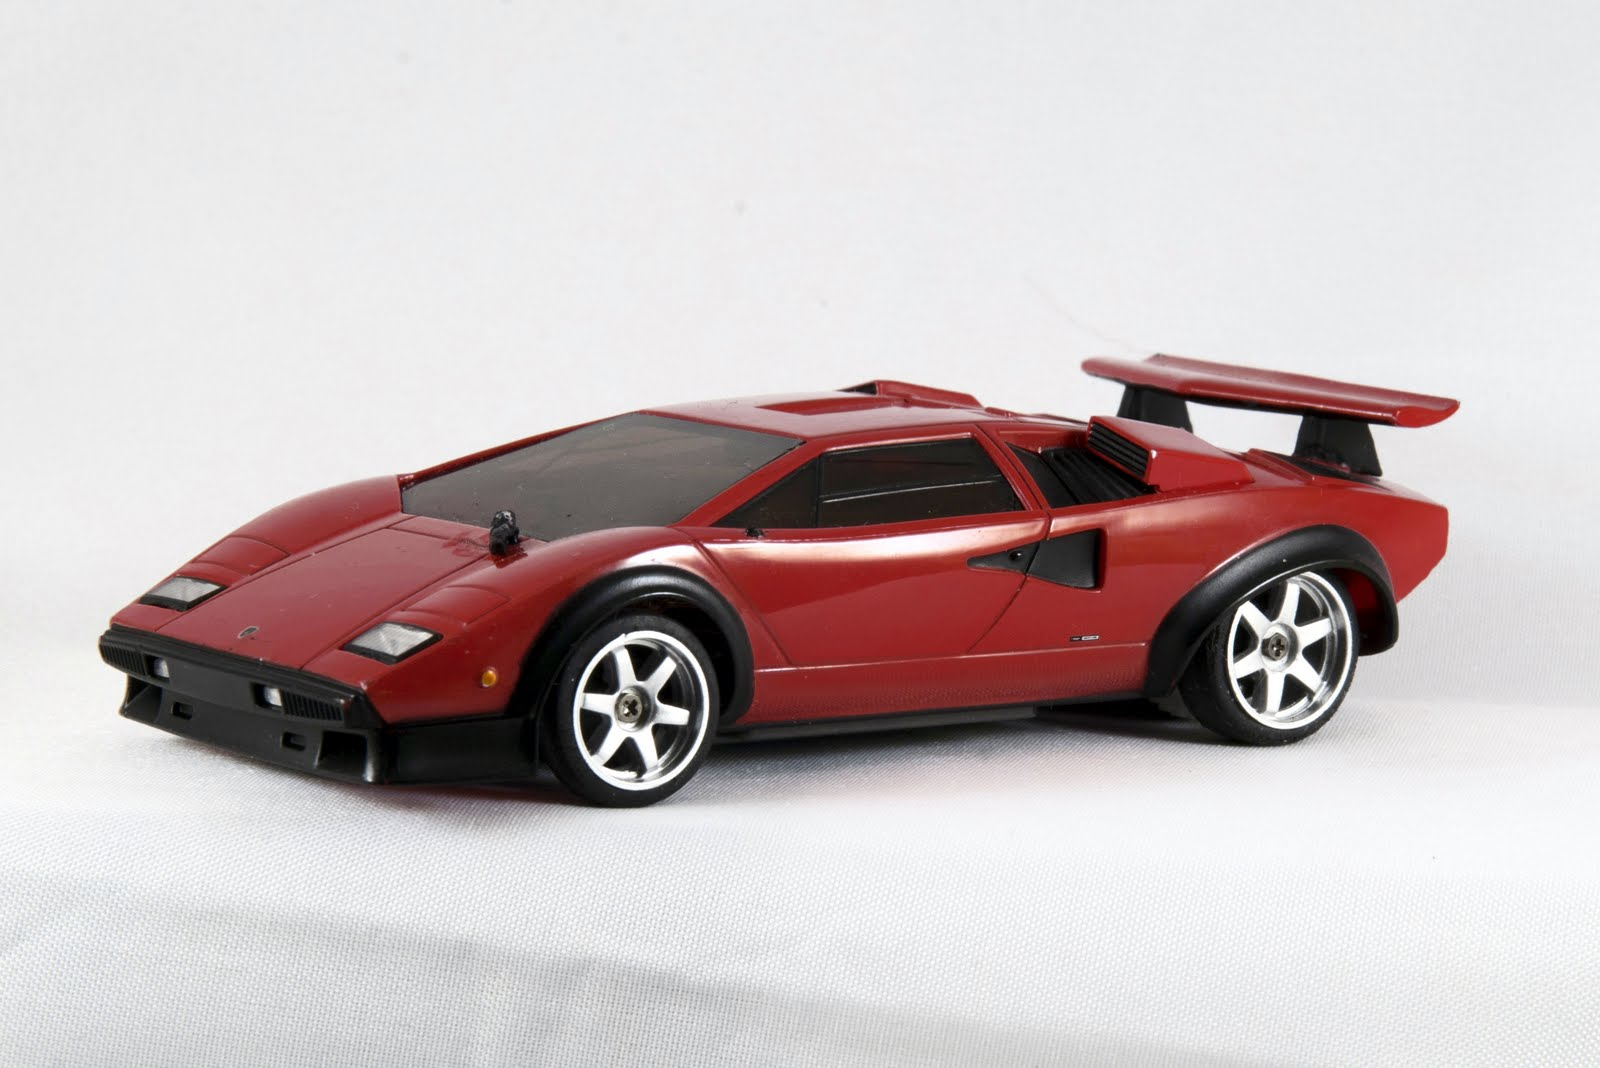 Kyosho Mini-Z: January 2012